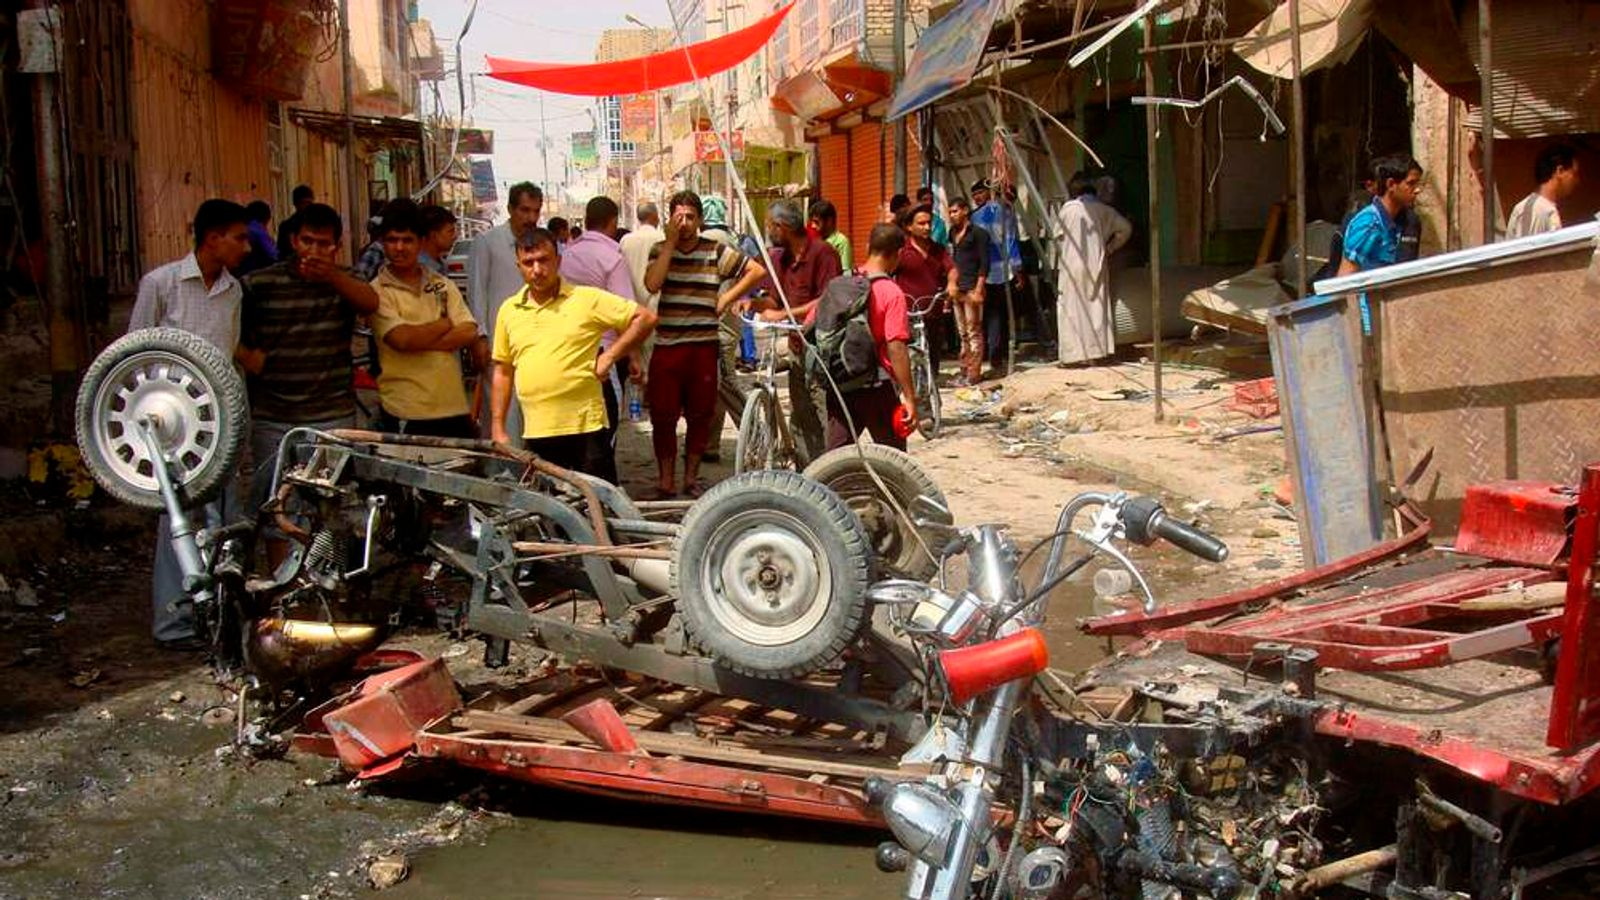 Residents look at damaged vehicles at the site of a bomb attack in a market in Diwaniya, 150 km south of Baghdad